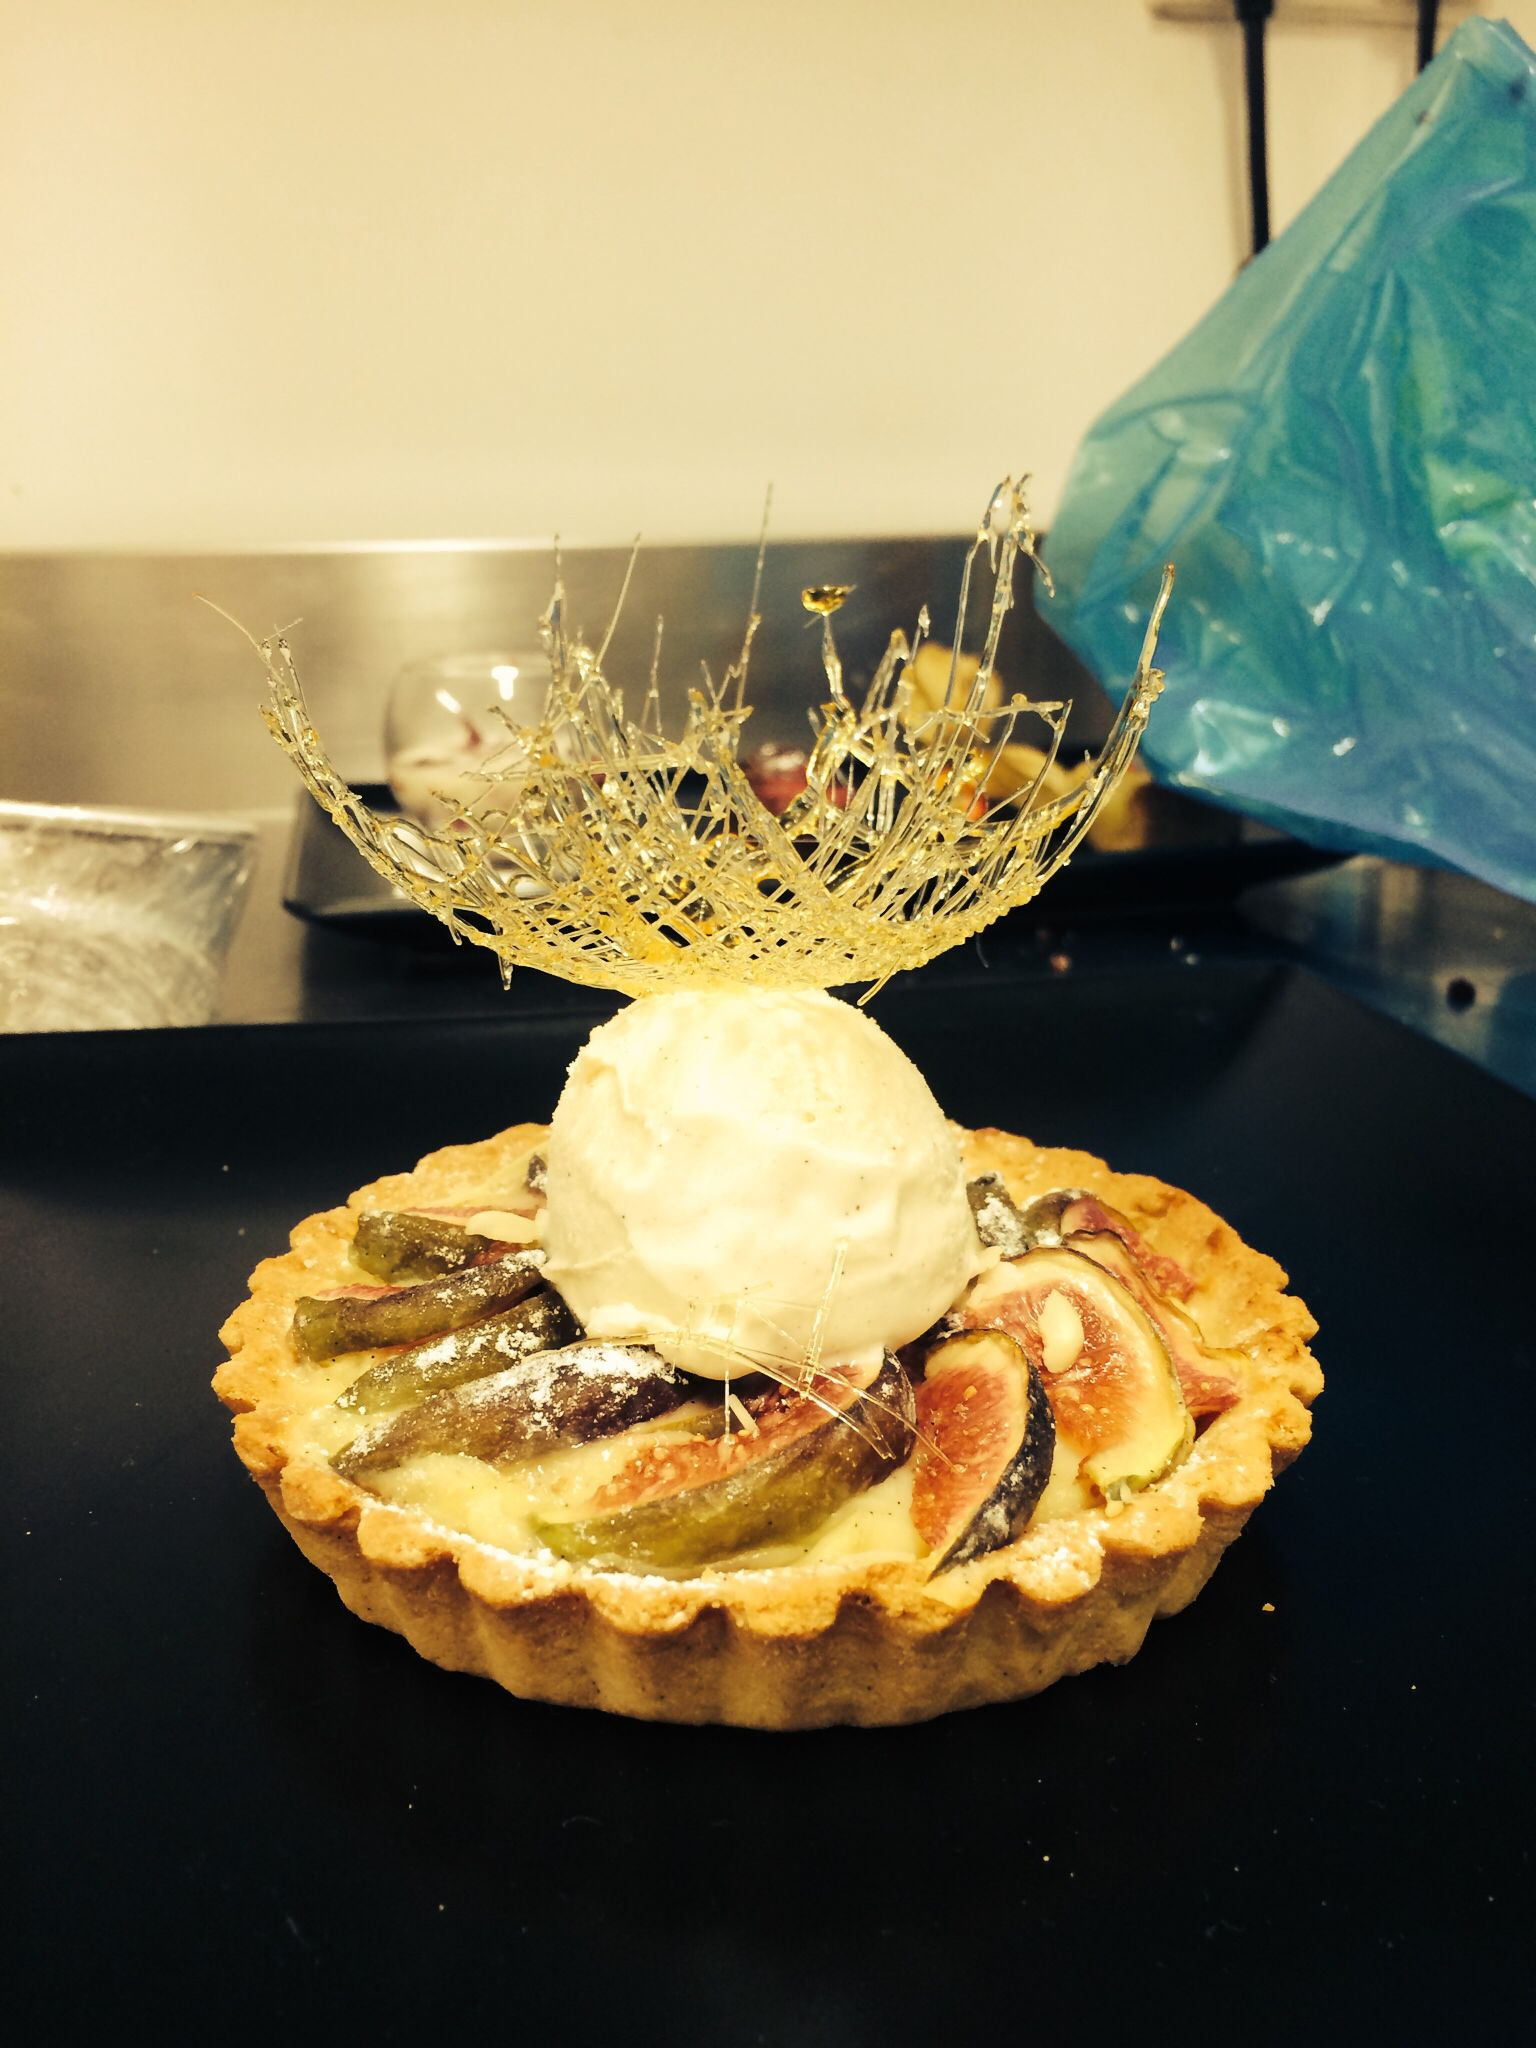 Corin restraunt where I work and on of my deserts it's a fig tart with cinnamon ice cream